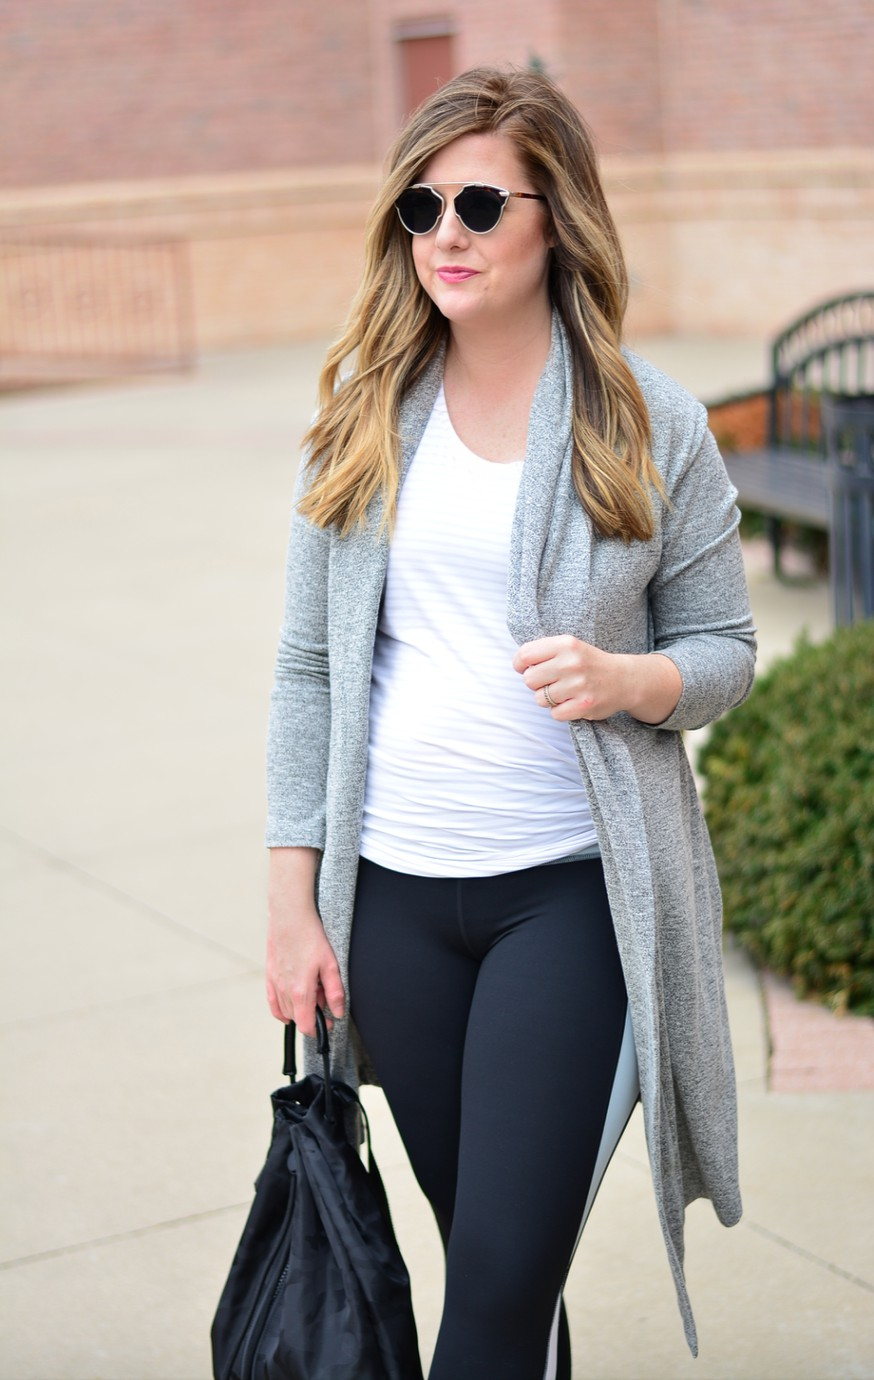 Athleta long cardigan and color block workout look